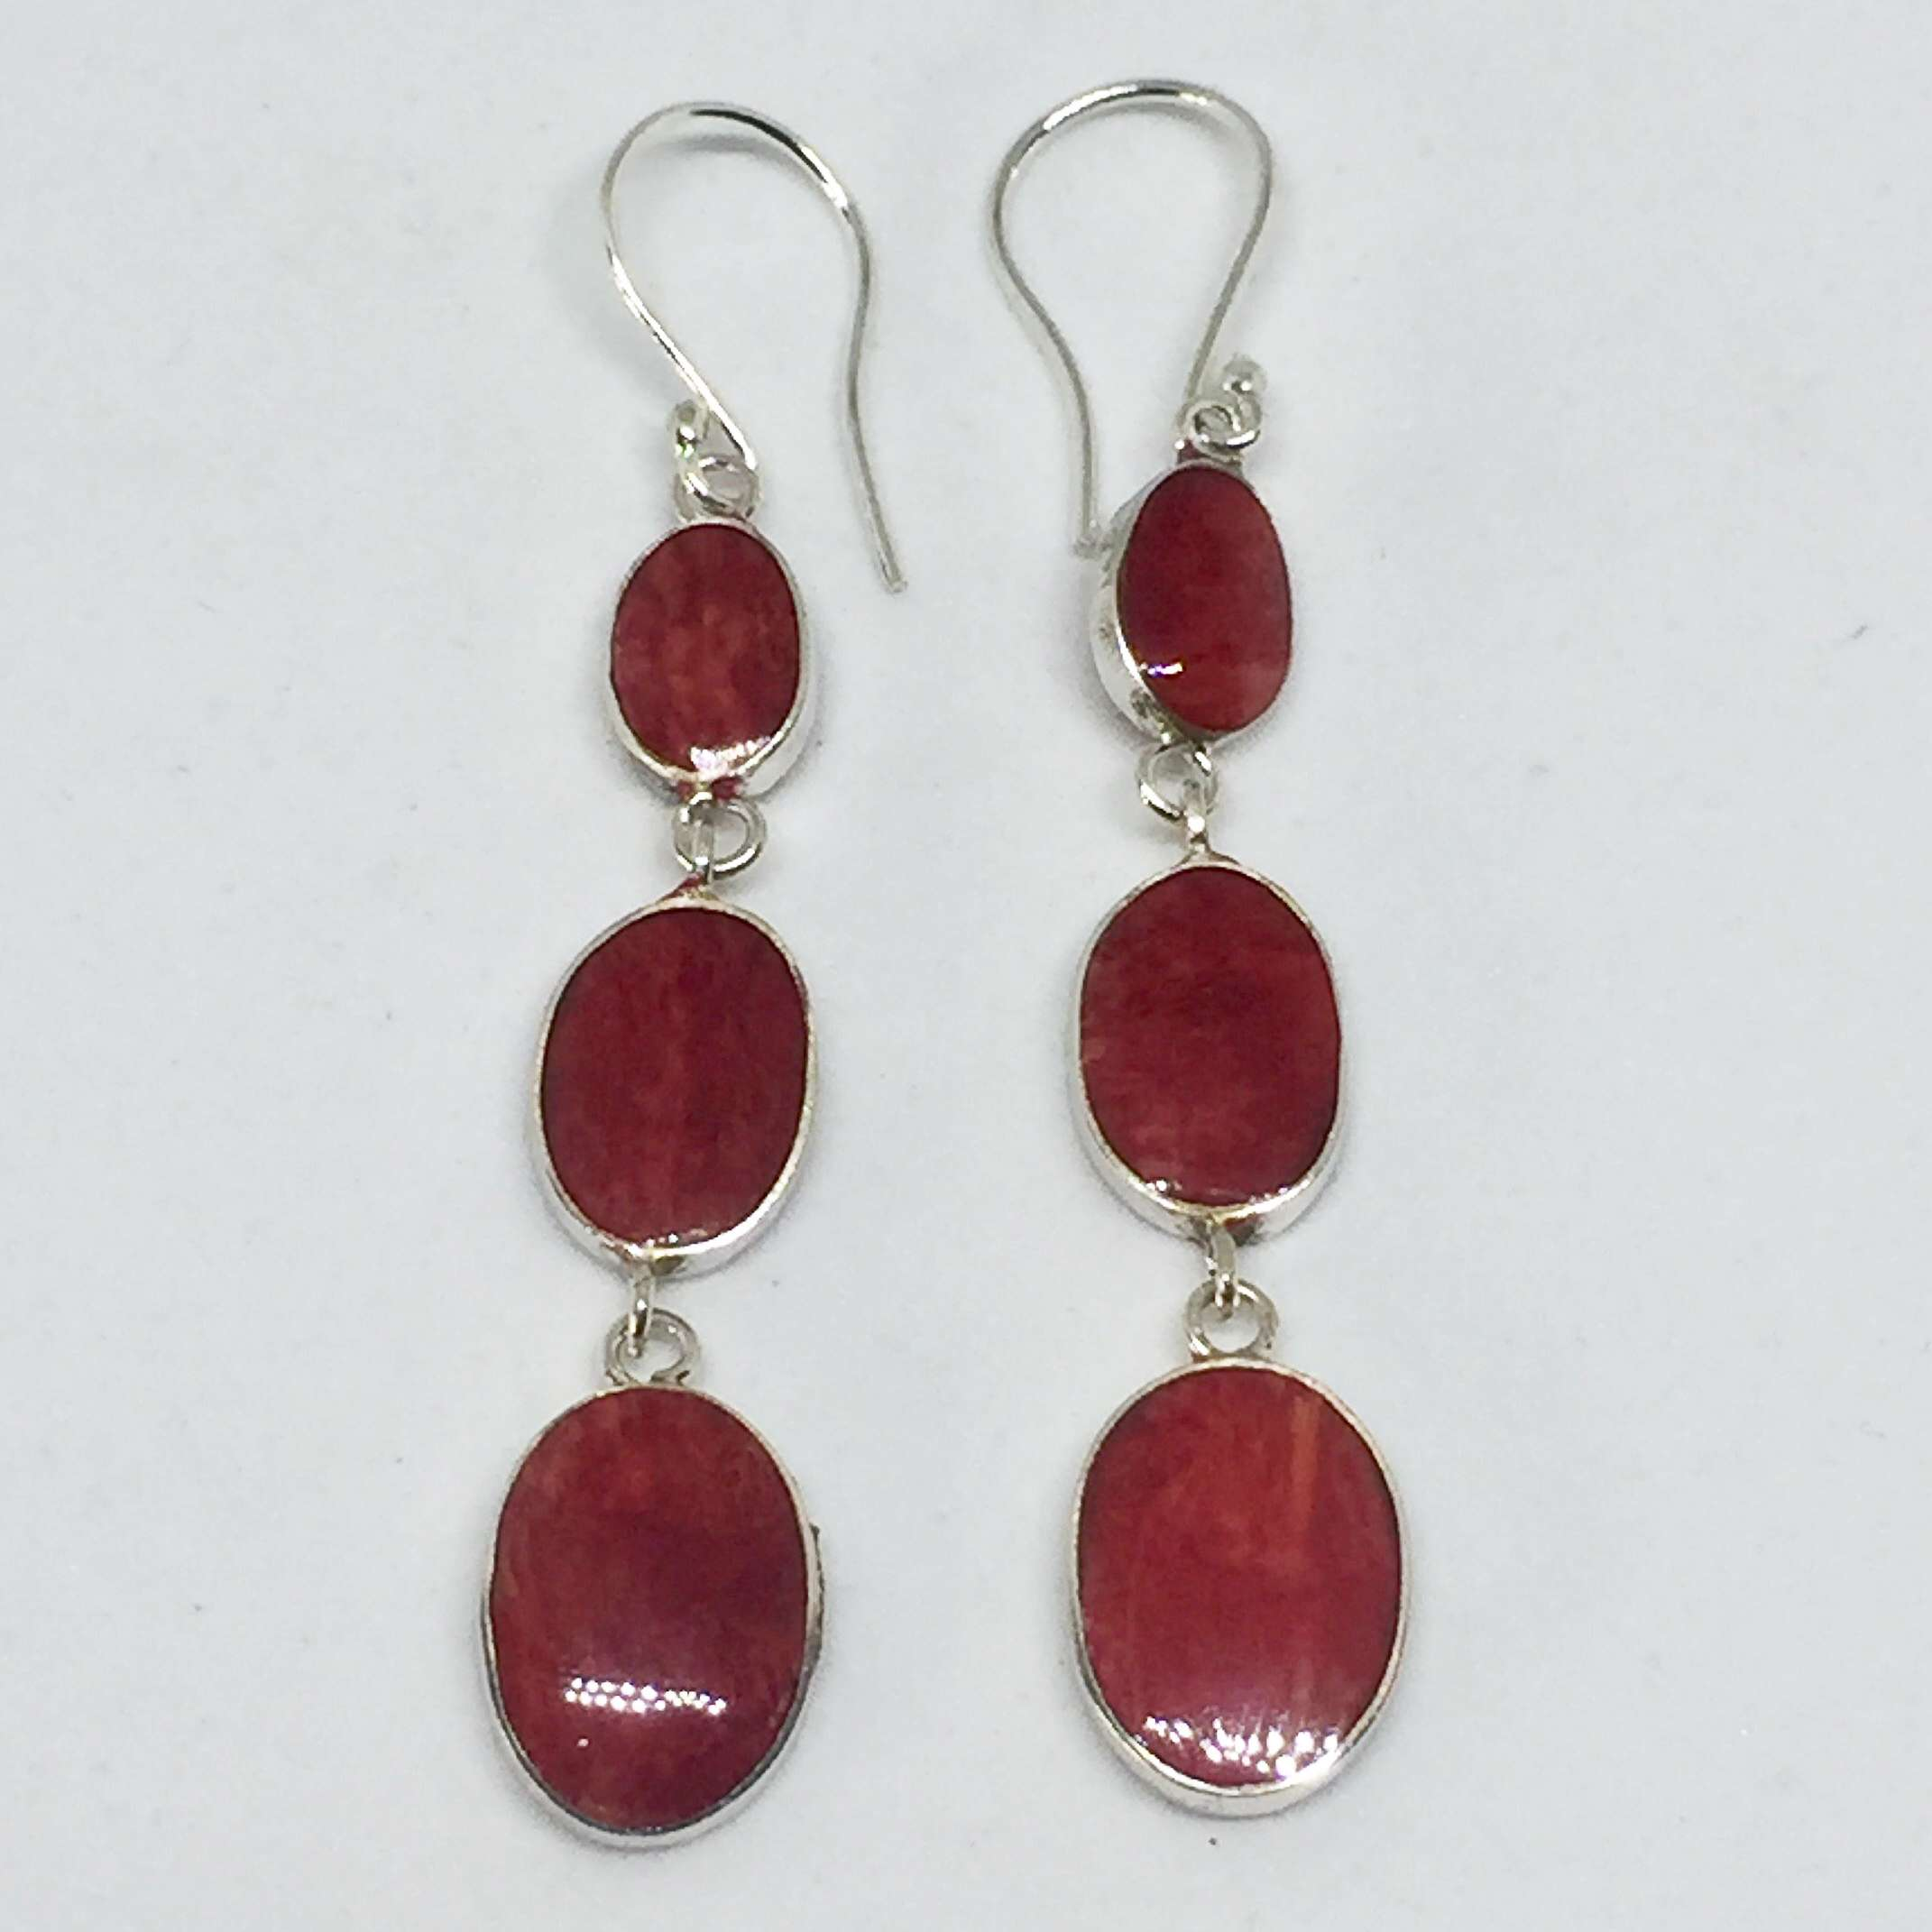 (UNIQUE 925 BALI SILVER EARRINGS WITH RED CORAL)